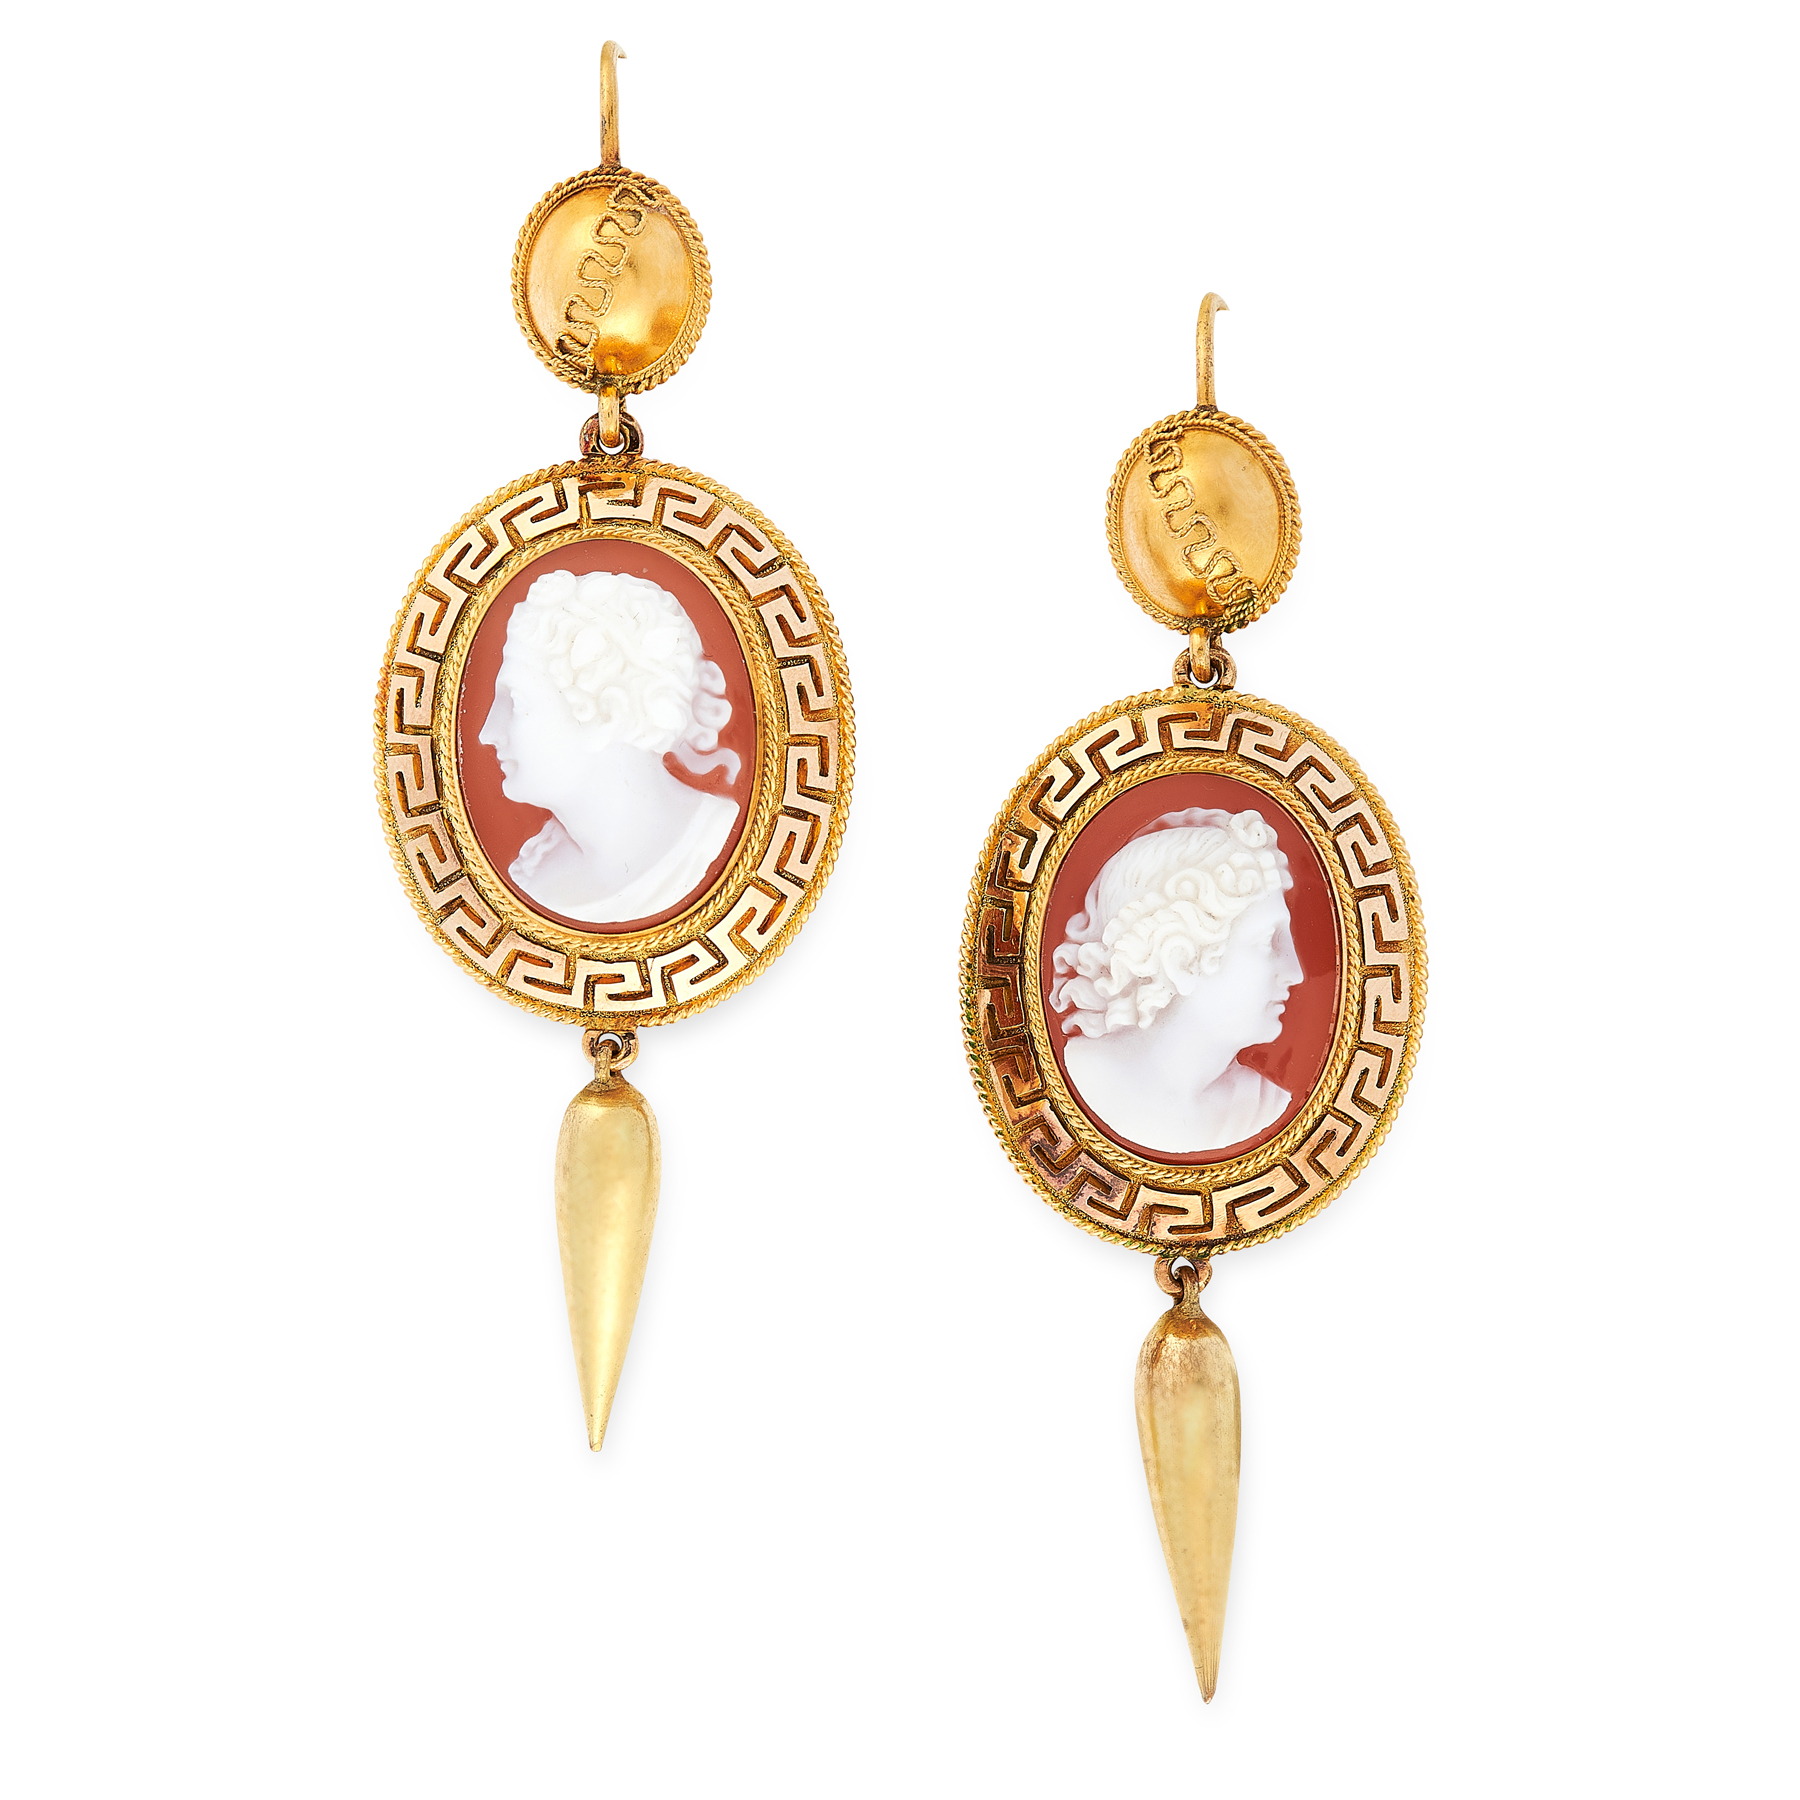 A PAIR OF ETRUSCAN REVIVAL CAMEO EARRINGS in high carat yellow gold, each formed of a carved shell